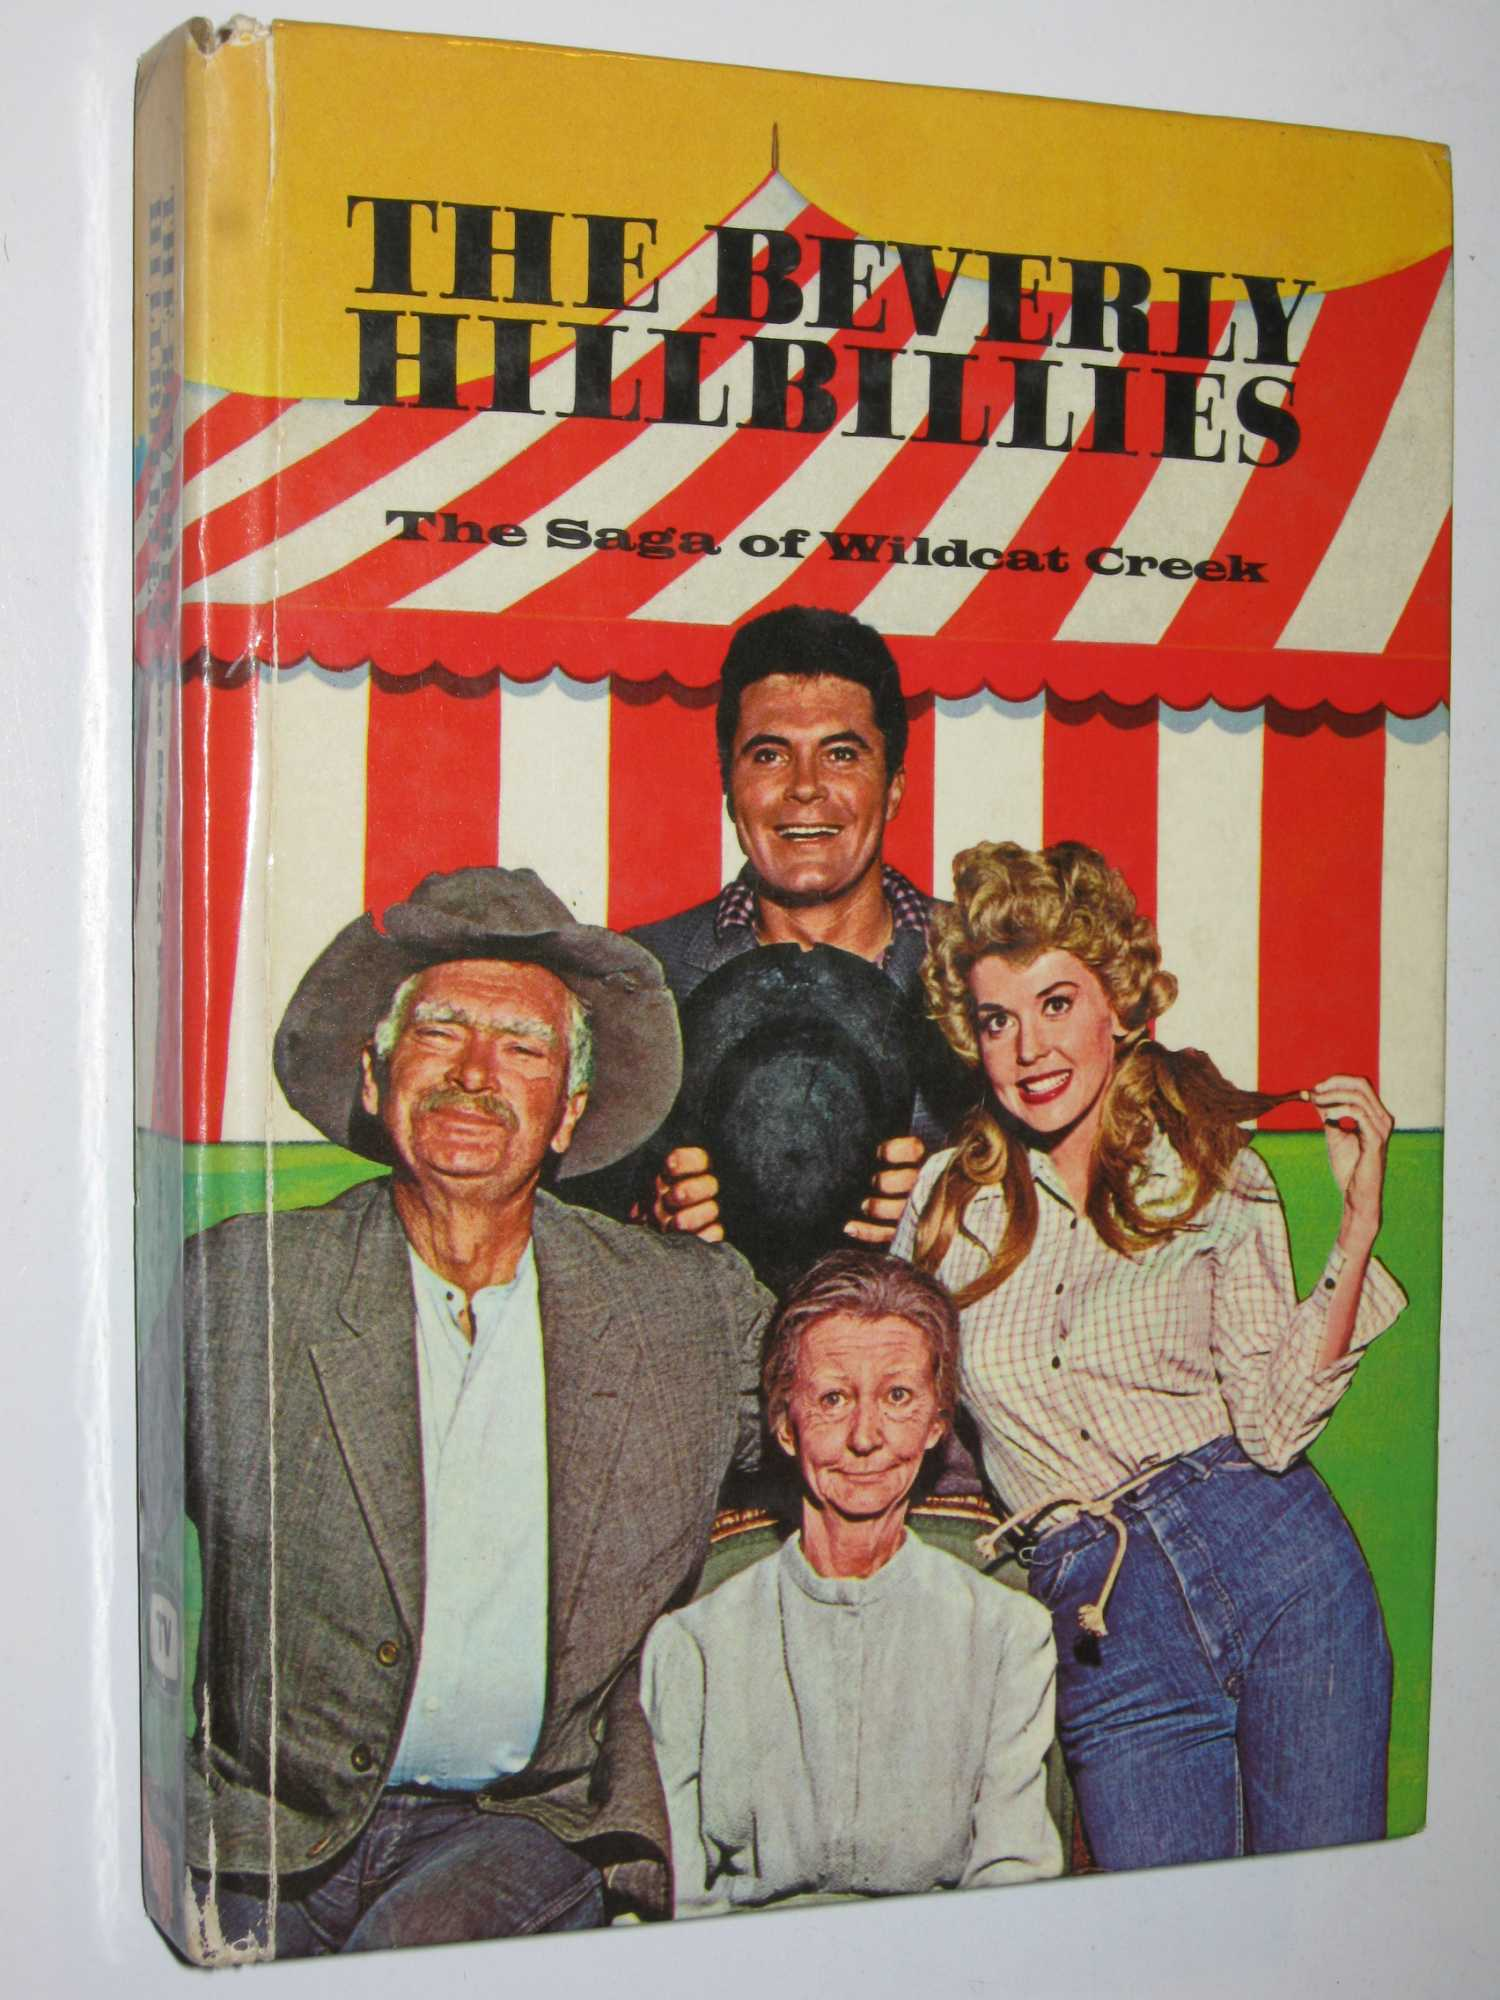 Image for The Saga Of Wildcat Creek - The Beverly Hillbillies Series